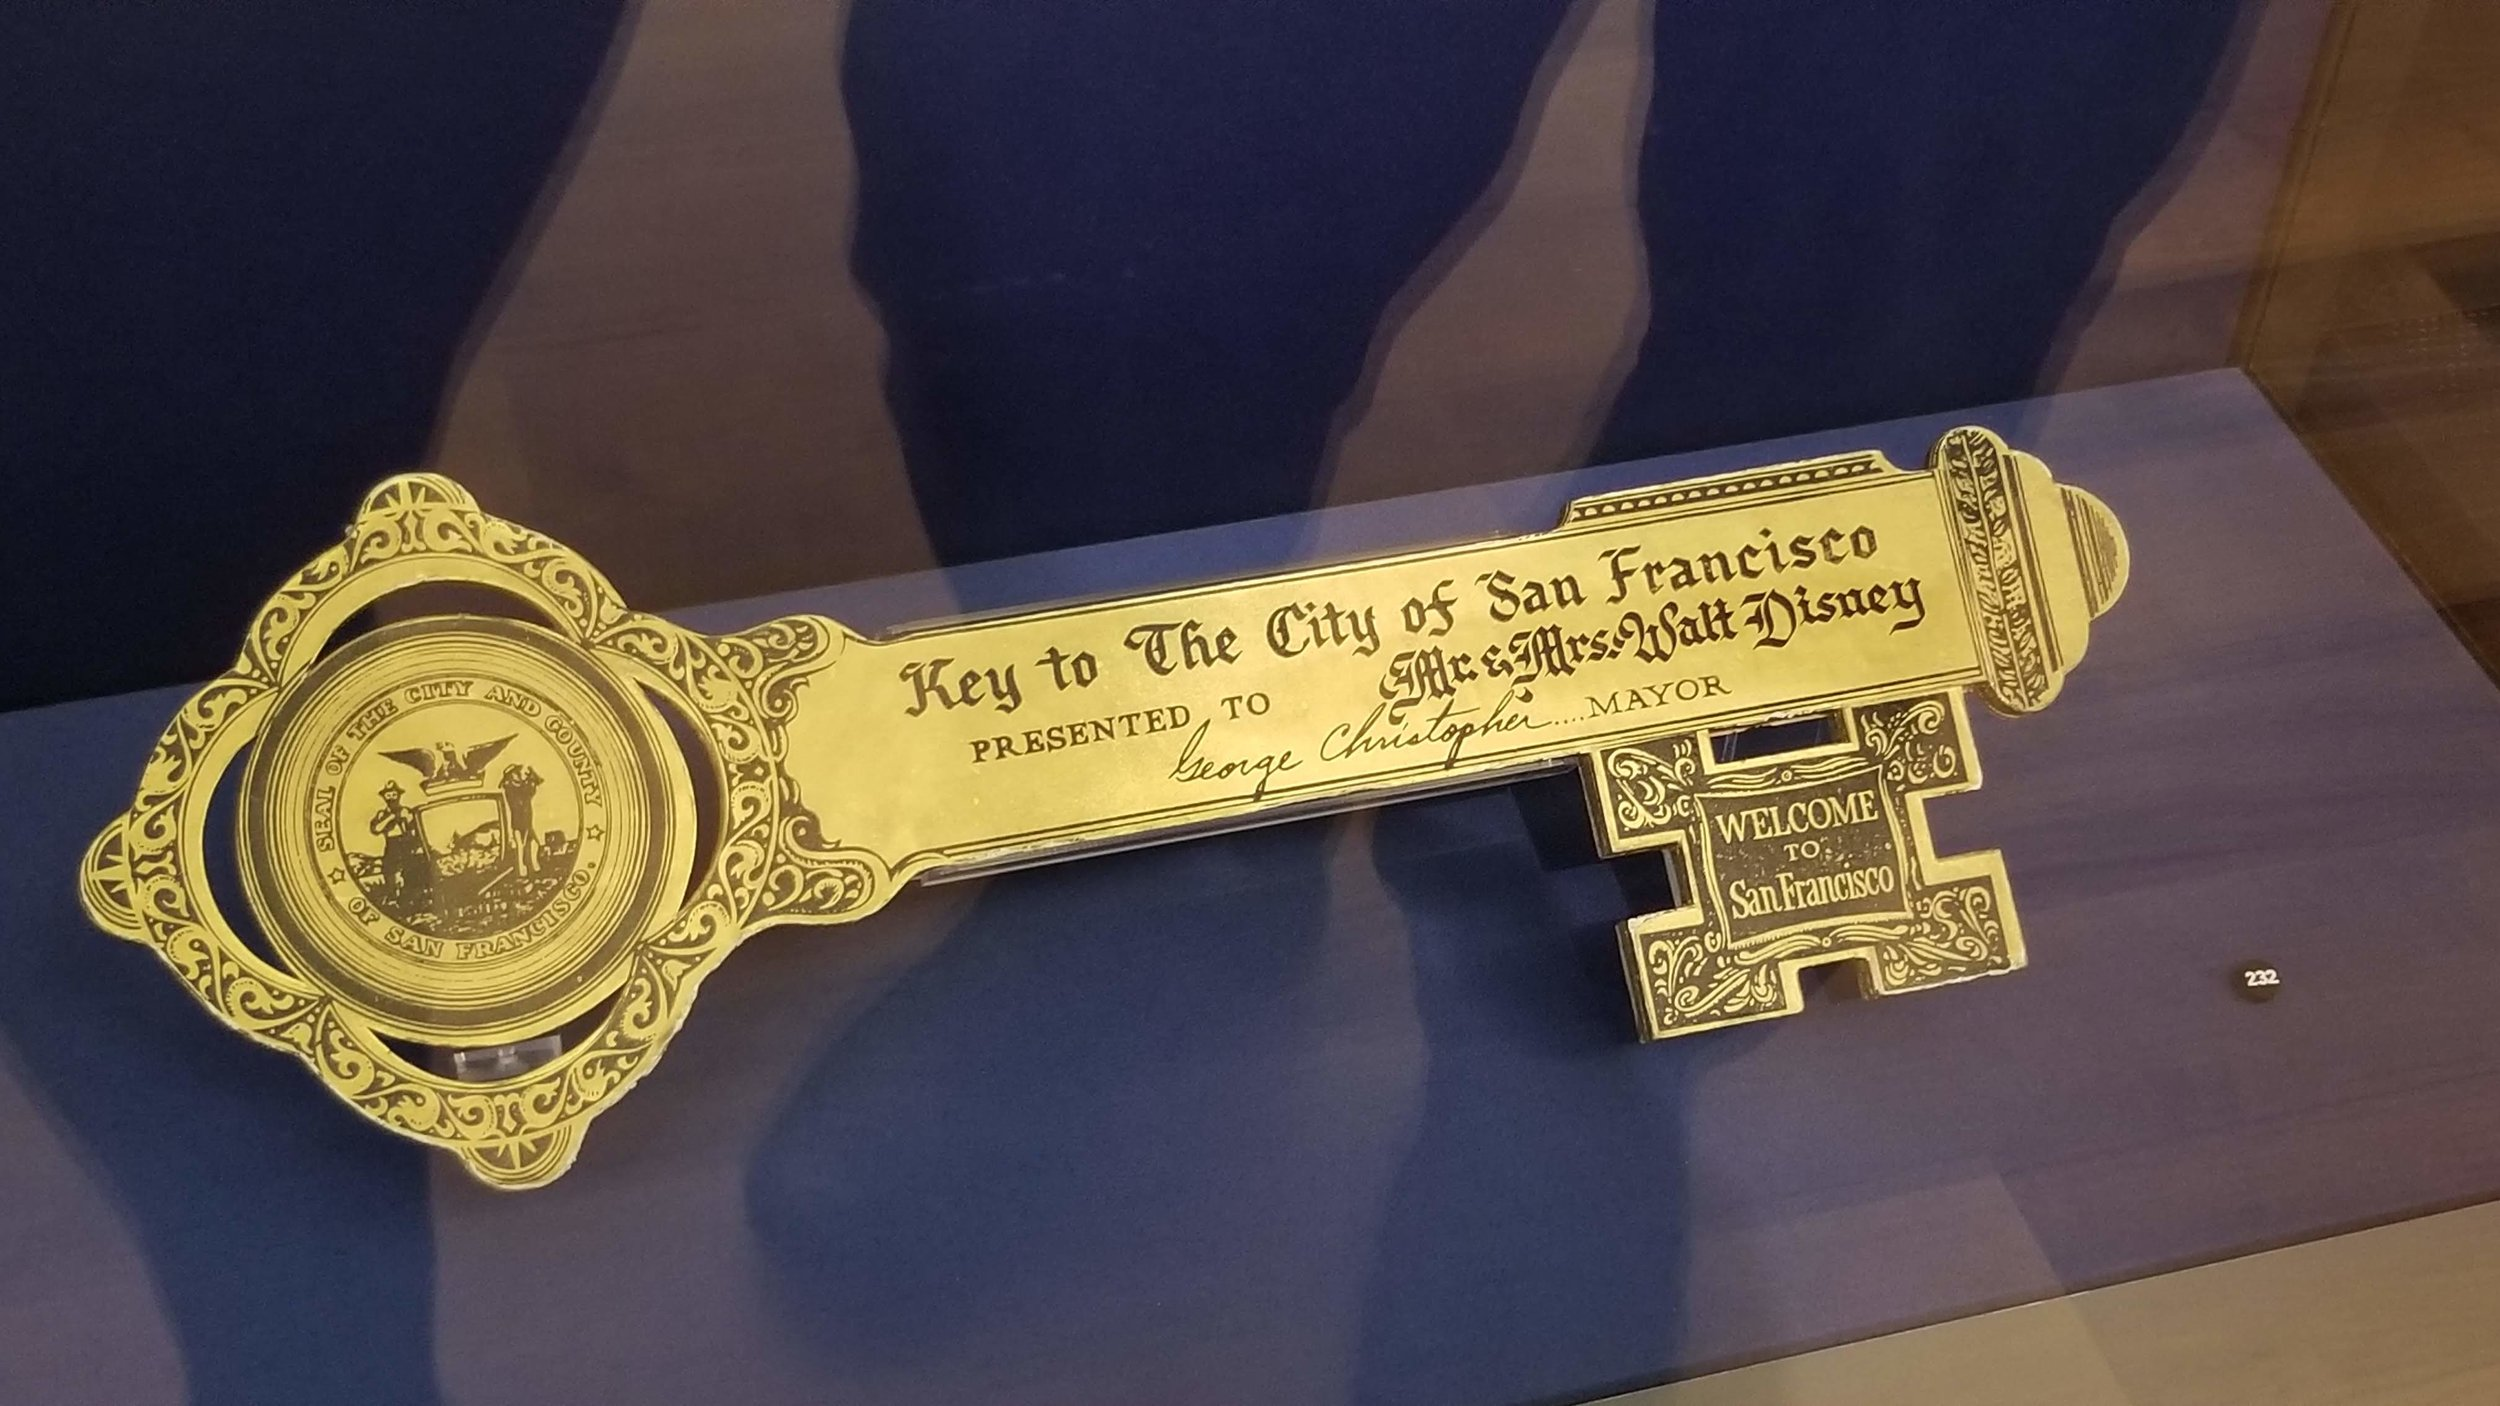 The Key to The City of San Francisco, Presented to Mr. & Mrs. Walt Disney.